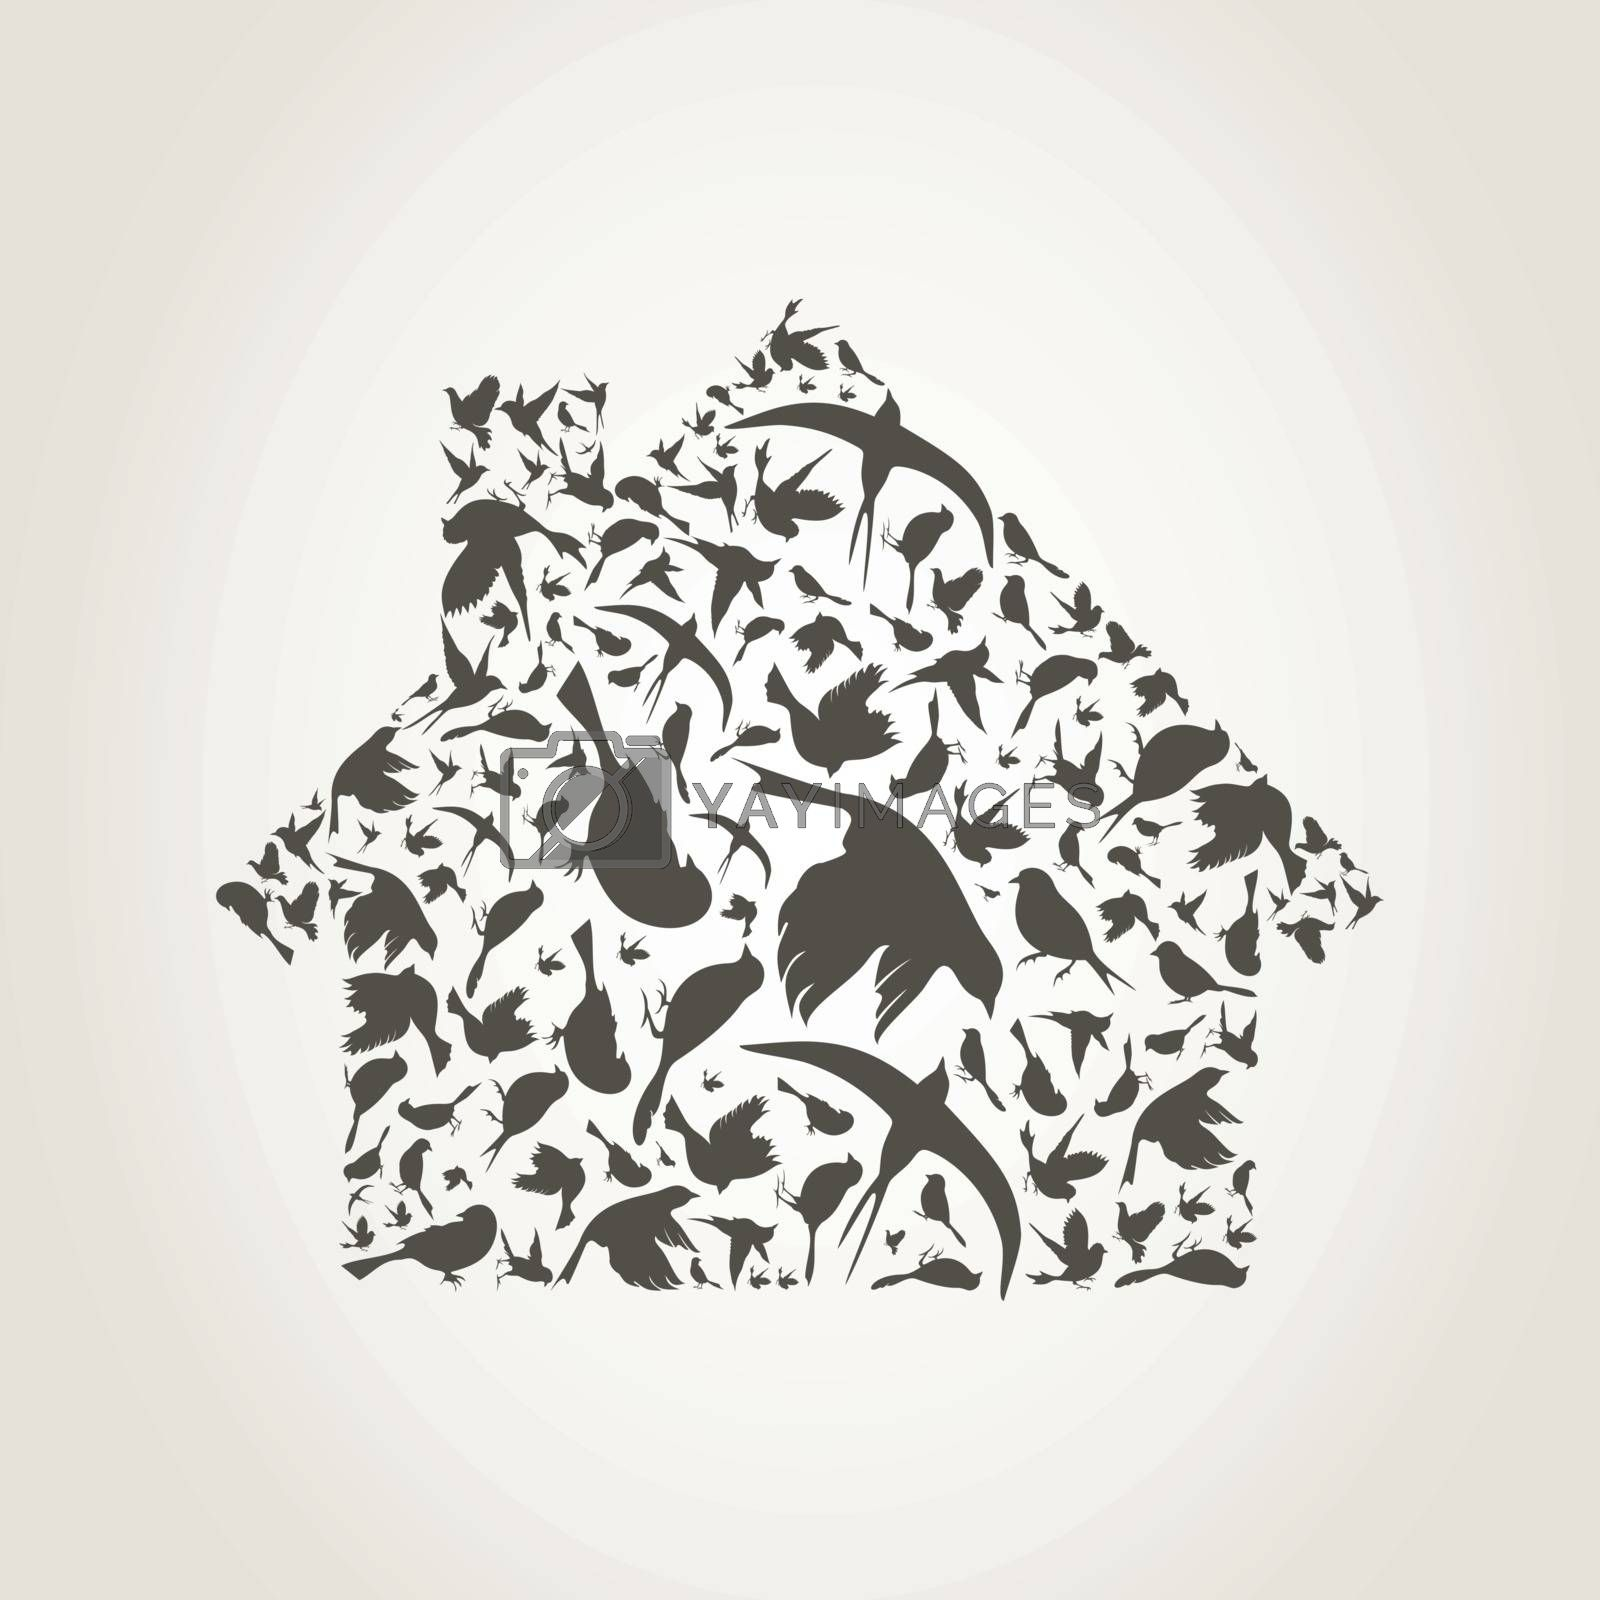 The house made of birds. A vector illustration